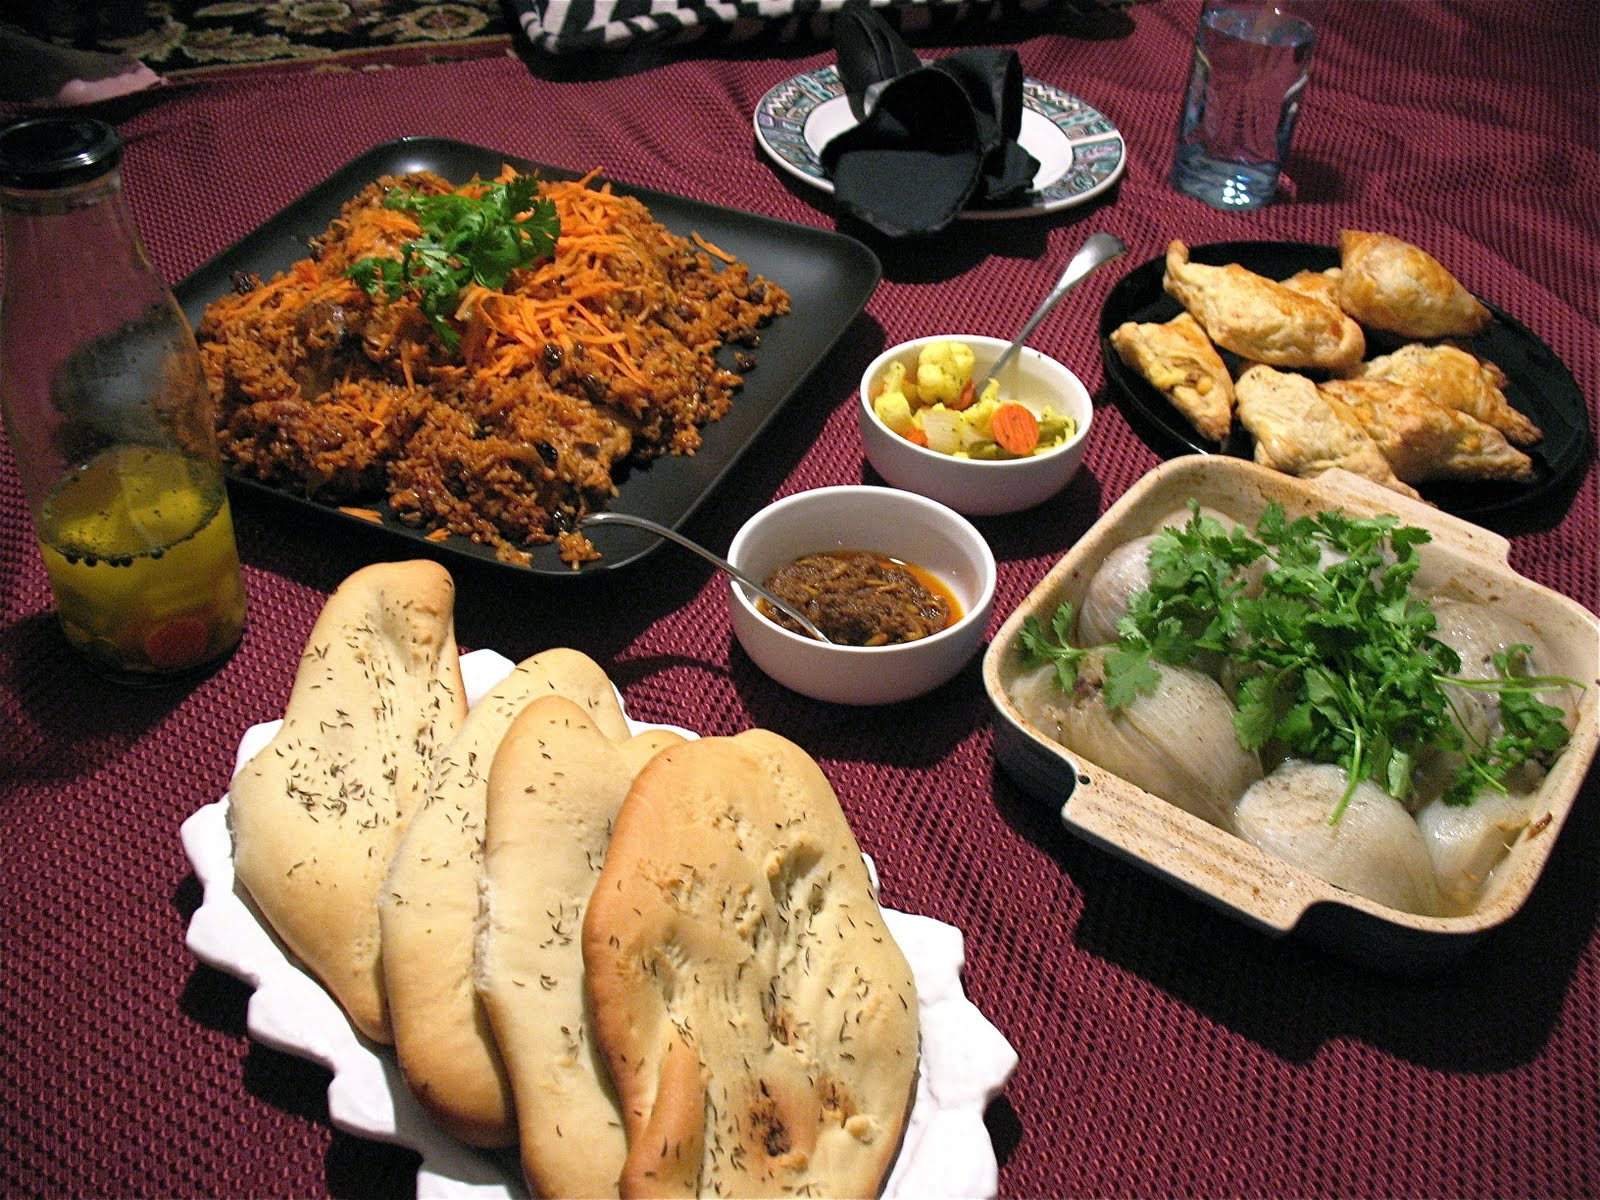 A traditional Afghan Table spread or Dastarkhan, with Osh Pyozee served at bottom right